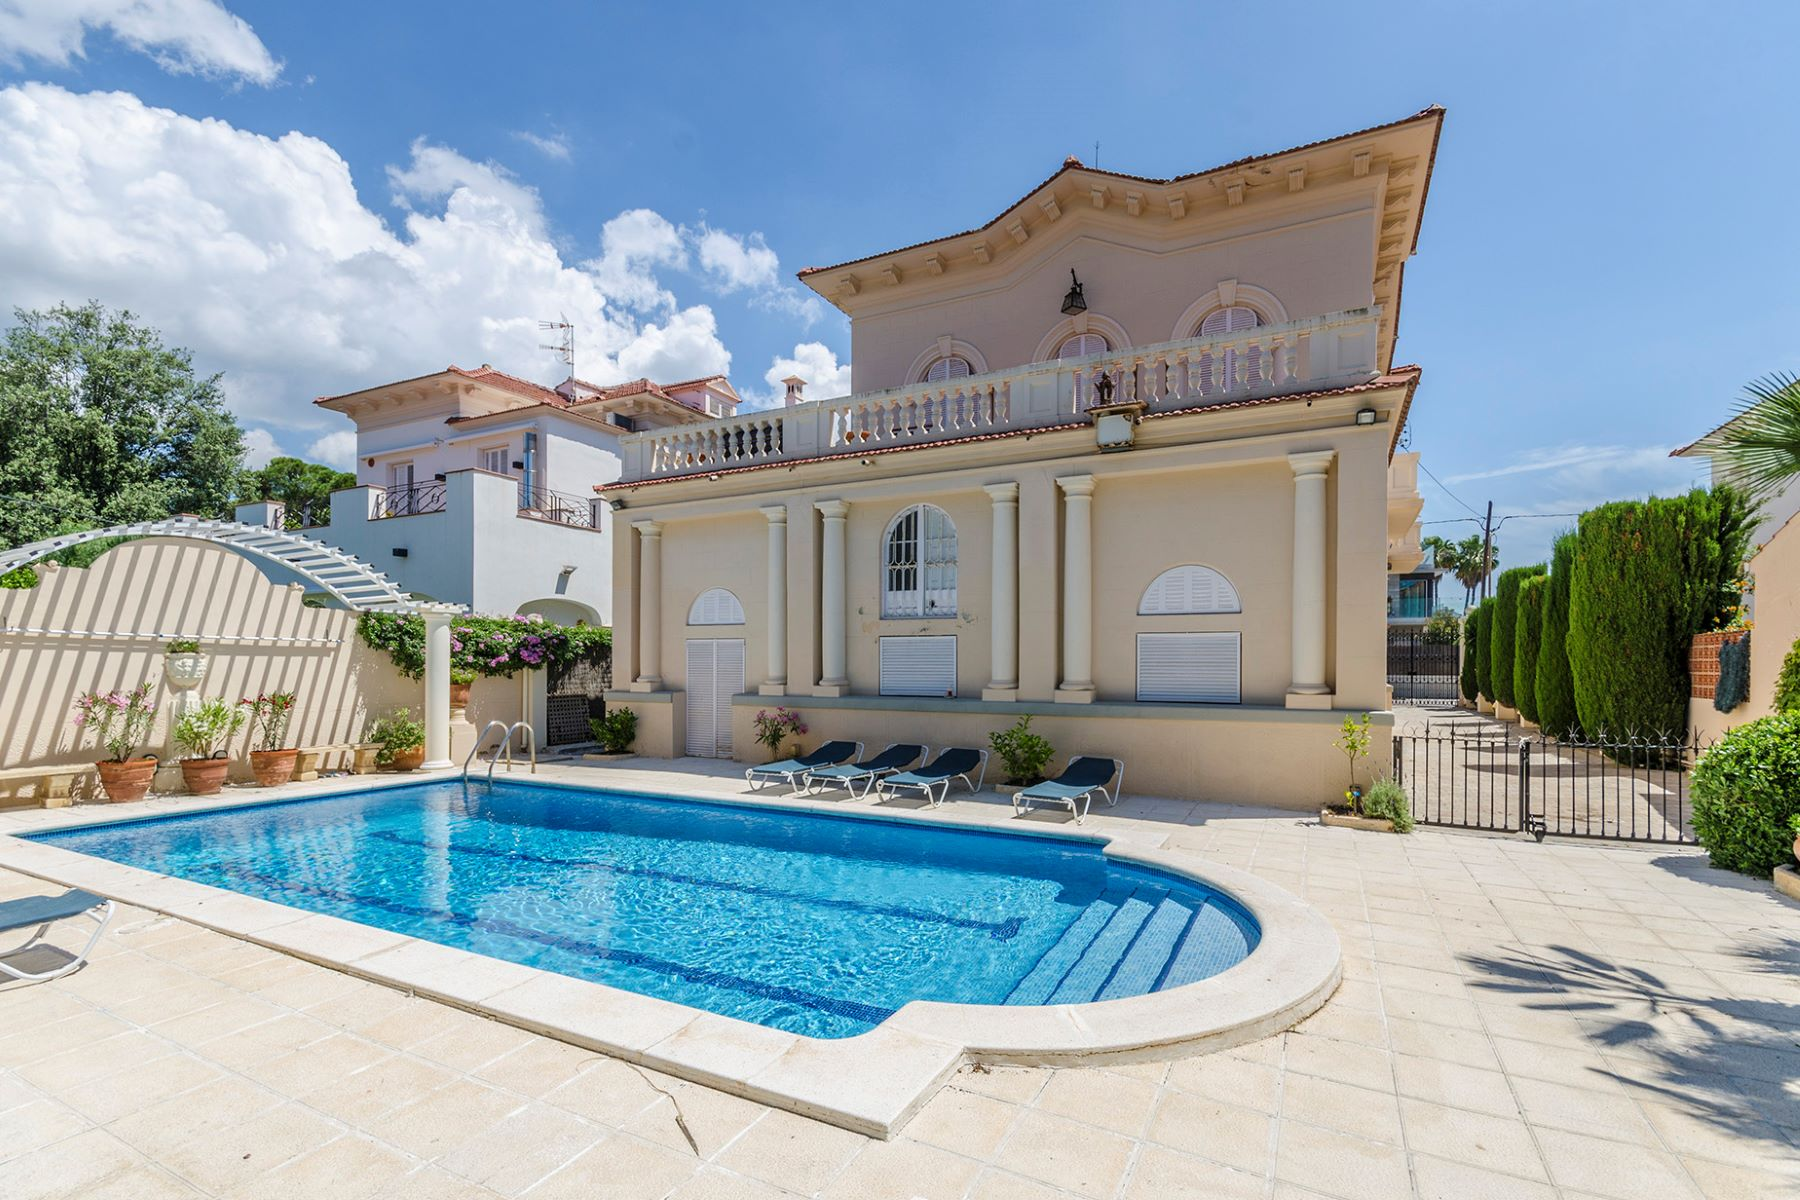 Single Family Homes for Sale at Elegant colonial style villa in Terramar, Sitges just 50 meters from the sea Sitges, Barcelona 08870 Spain